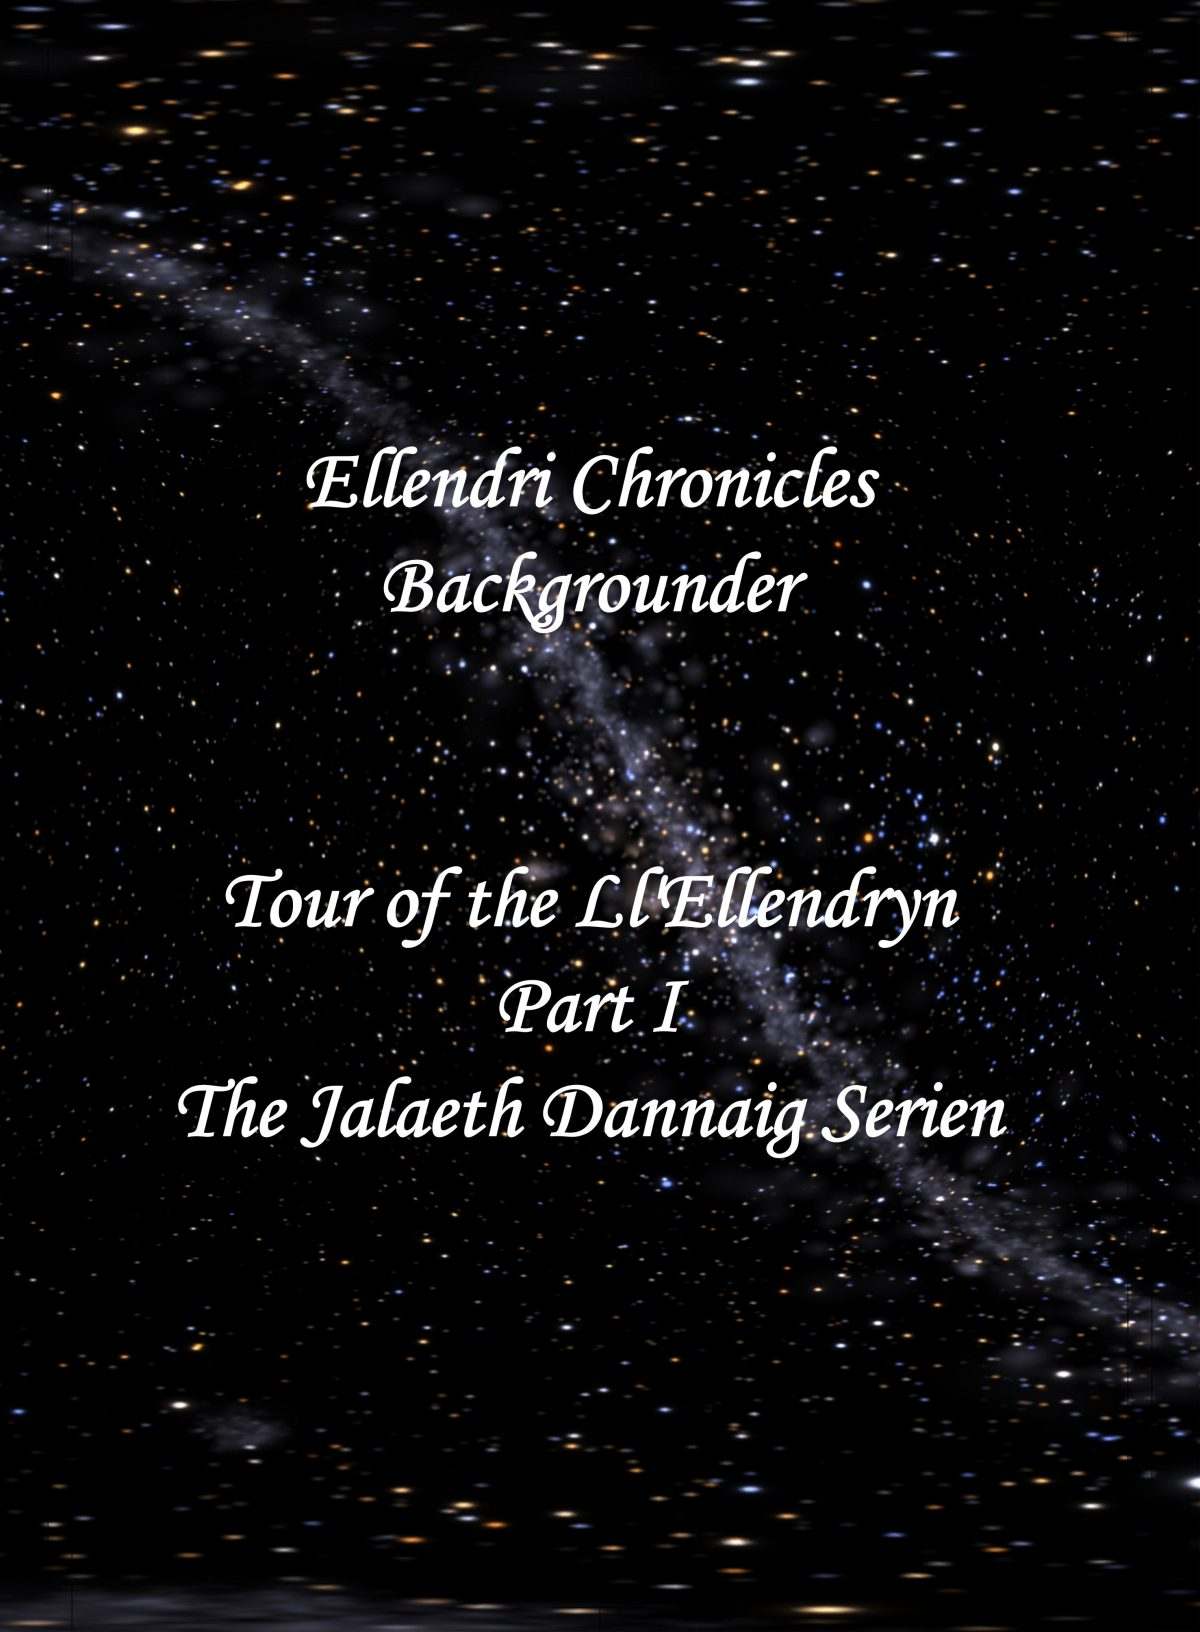 Ellendri Chronicles Backgrounder Part I